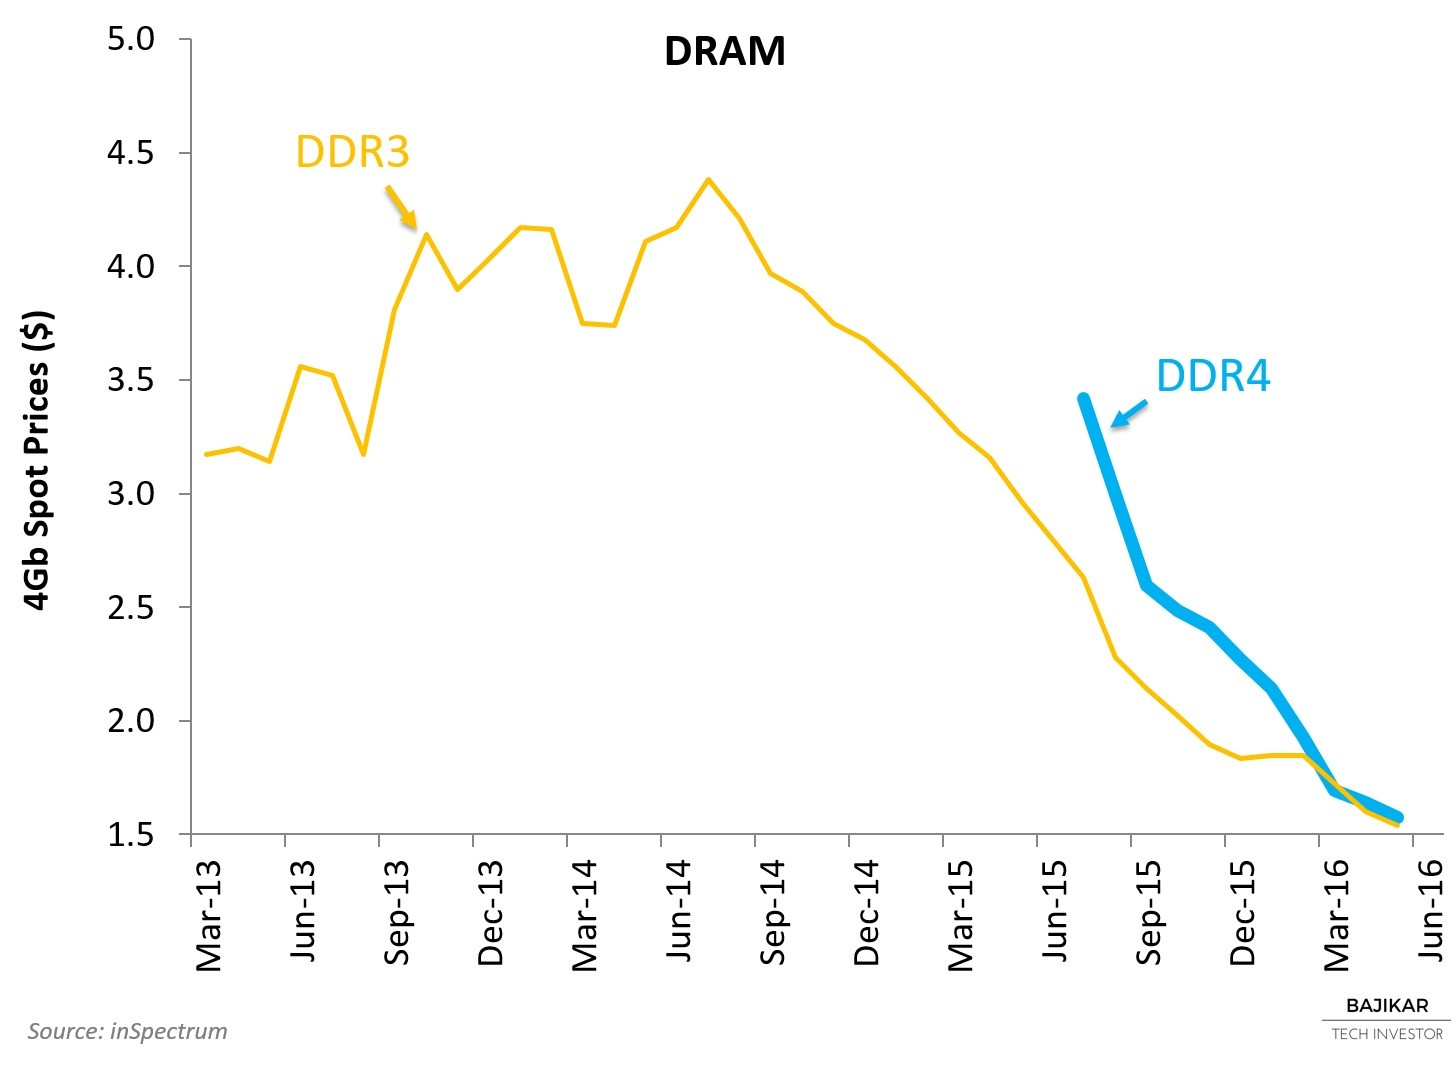 DRAM Spot Prices May 2016